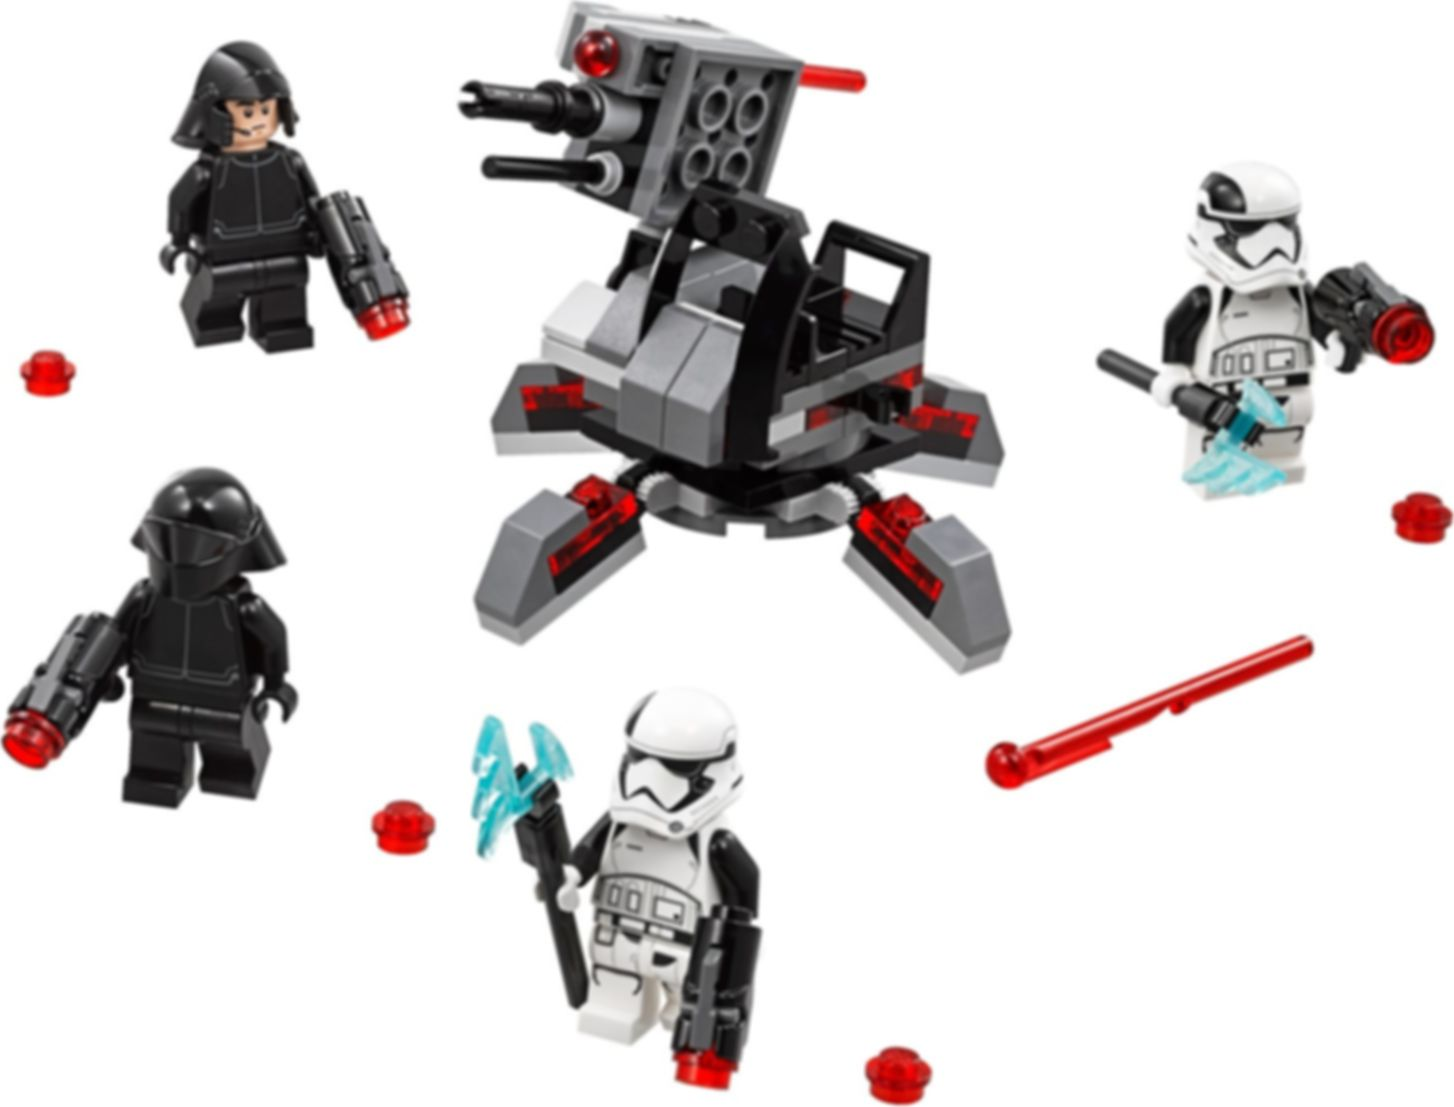 First Order Specialists Battle Pack components